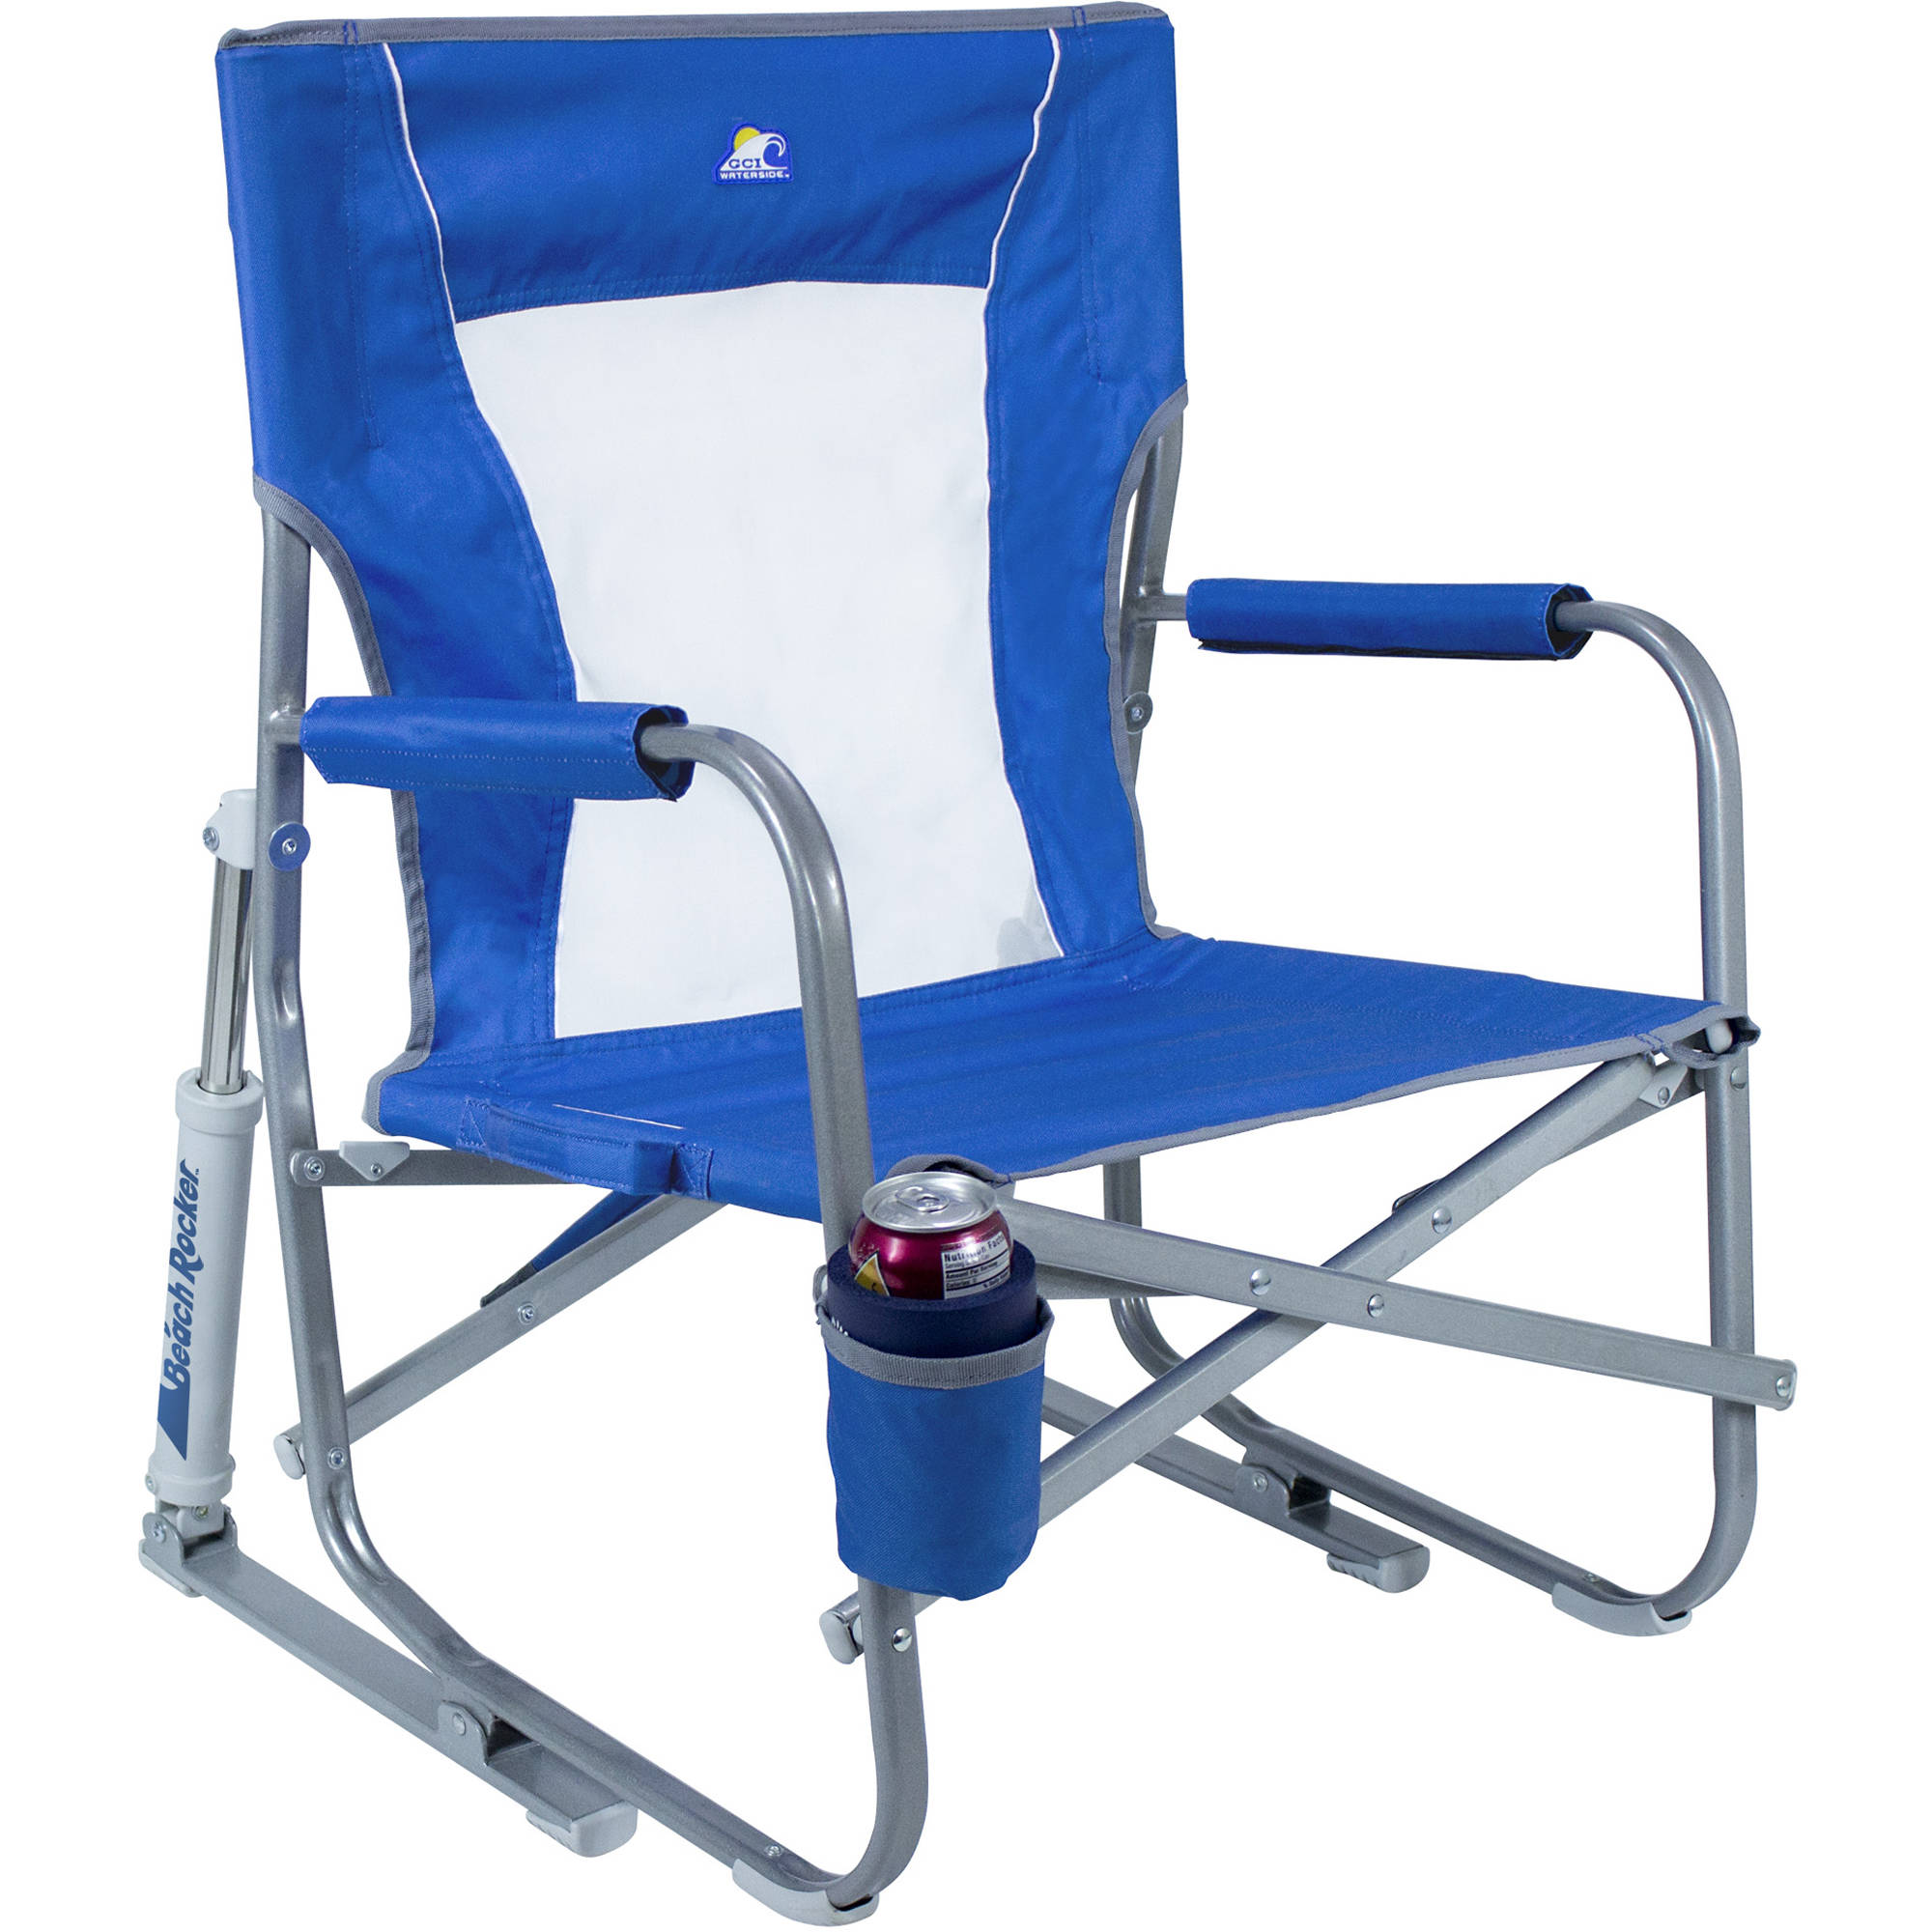 Brilliant Gci Outdoor Beach Rocker Folding Chair Saybrook Blue Gmtry Best Dining Table And Chair Ideas Images Gmtryco